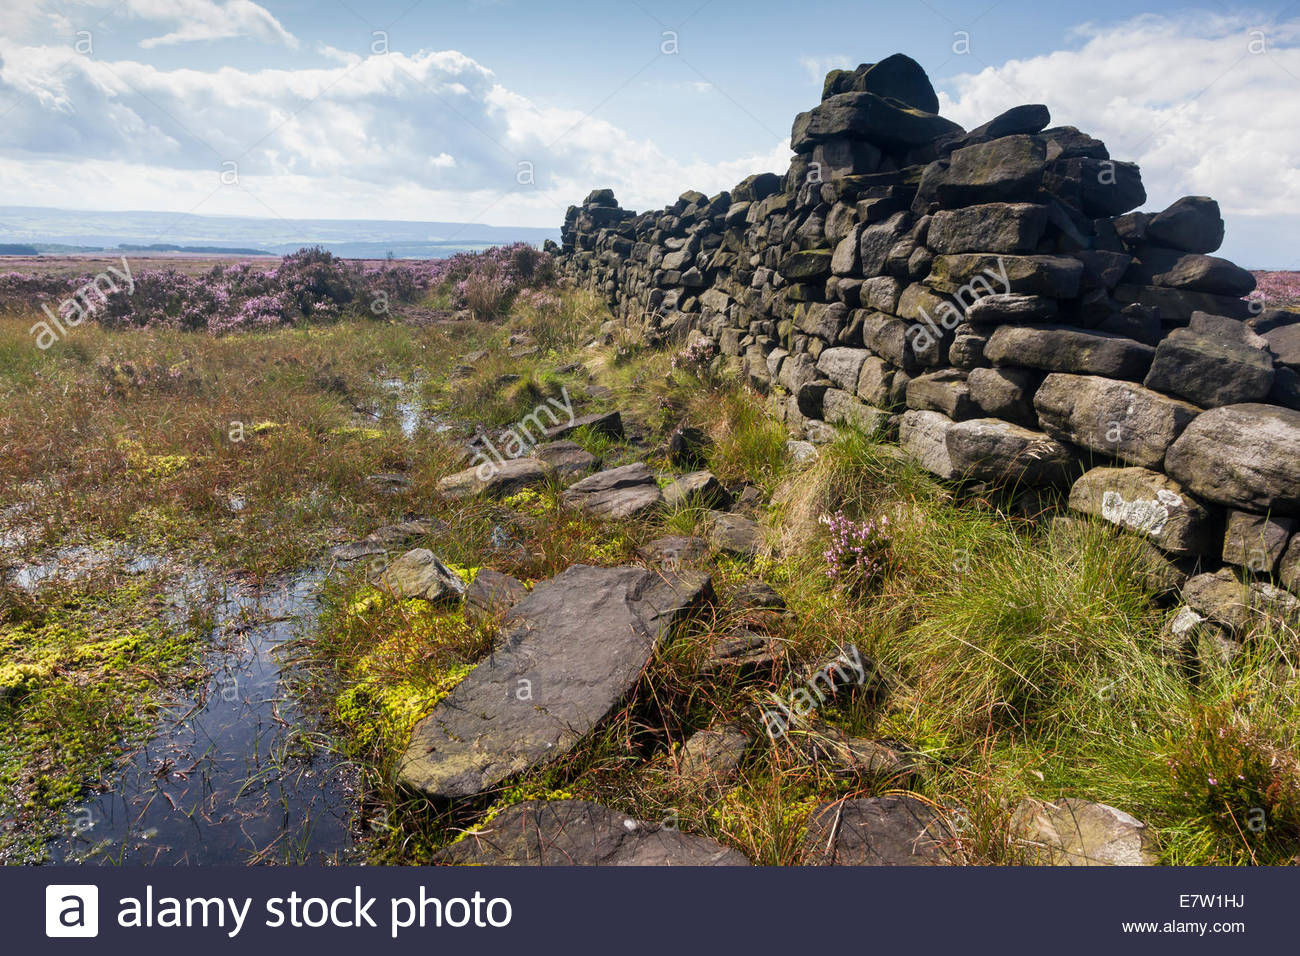 View from Ilkley Moor ( Rombalds Moor ) towards the Aire Valley / Airedale . West Yorkshire England UK Stock Photo